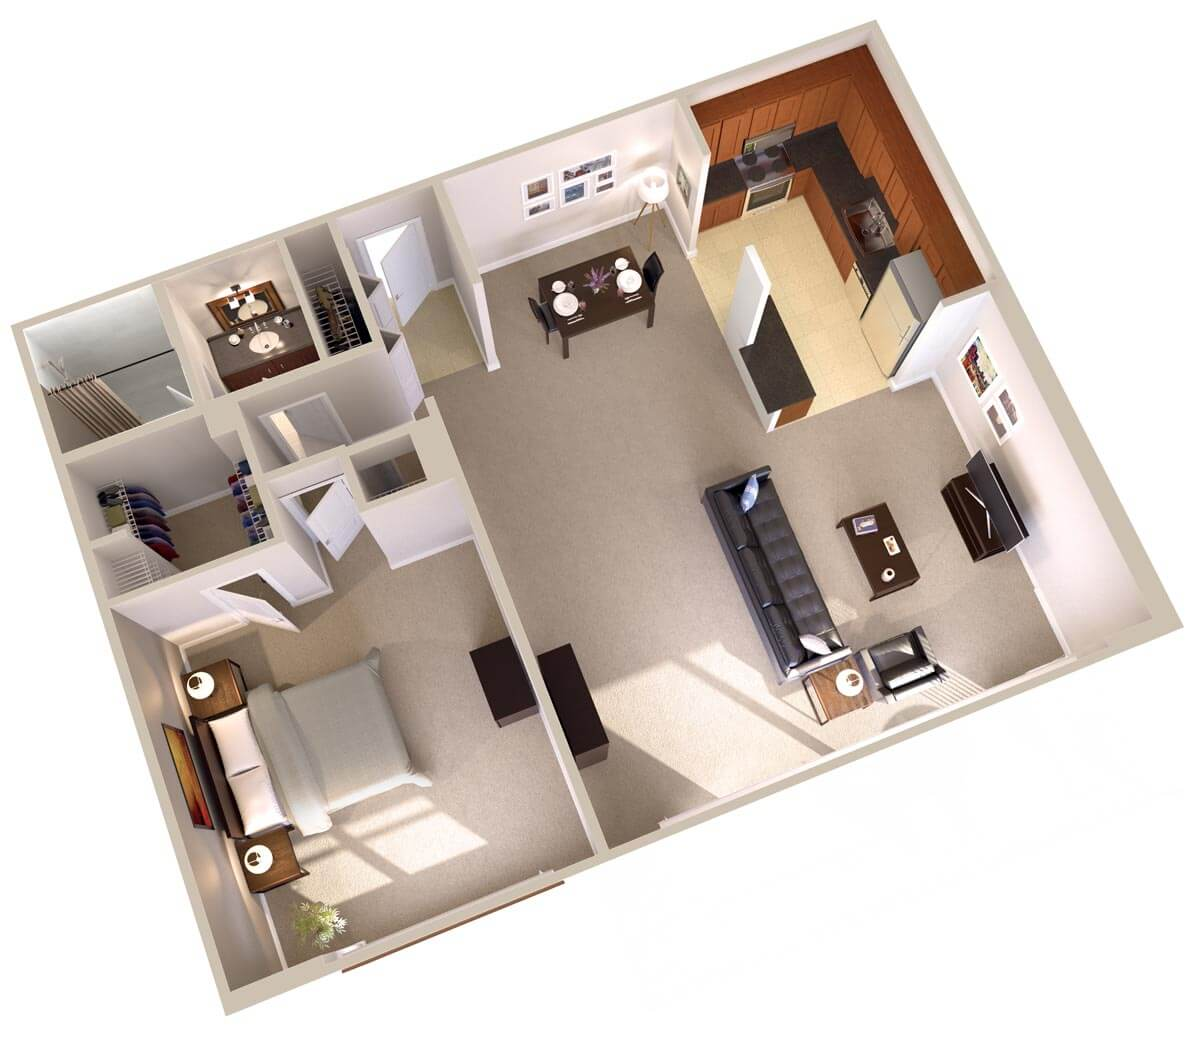 One bedroom apartments in bethesda md topaz house apts for Floor plans for one bedroom apartments